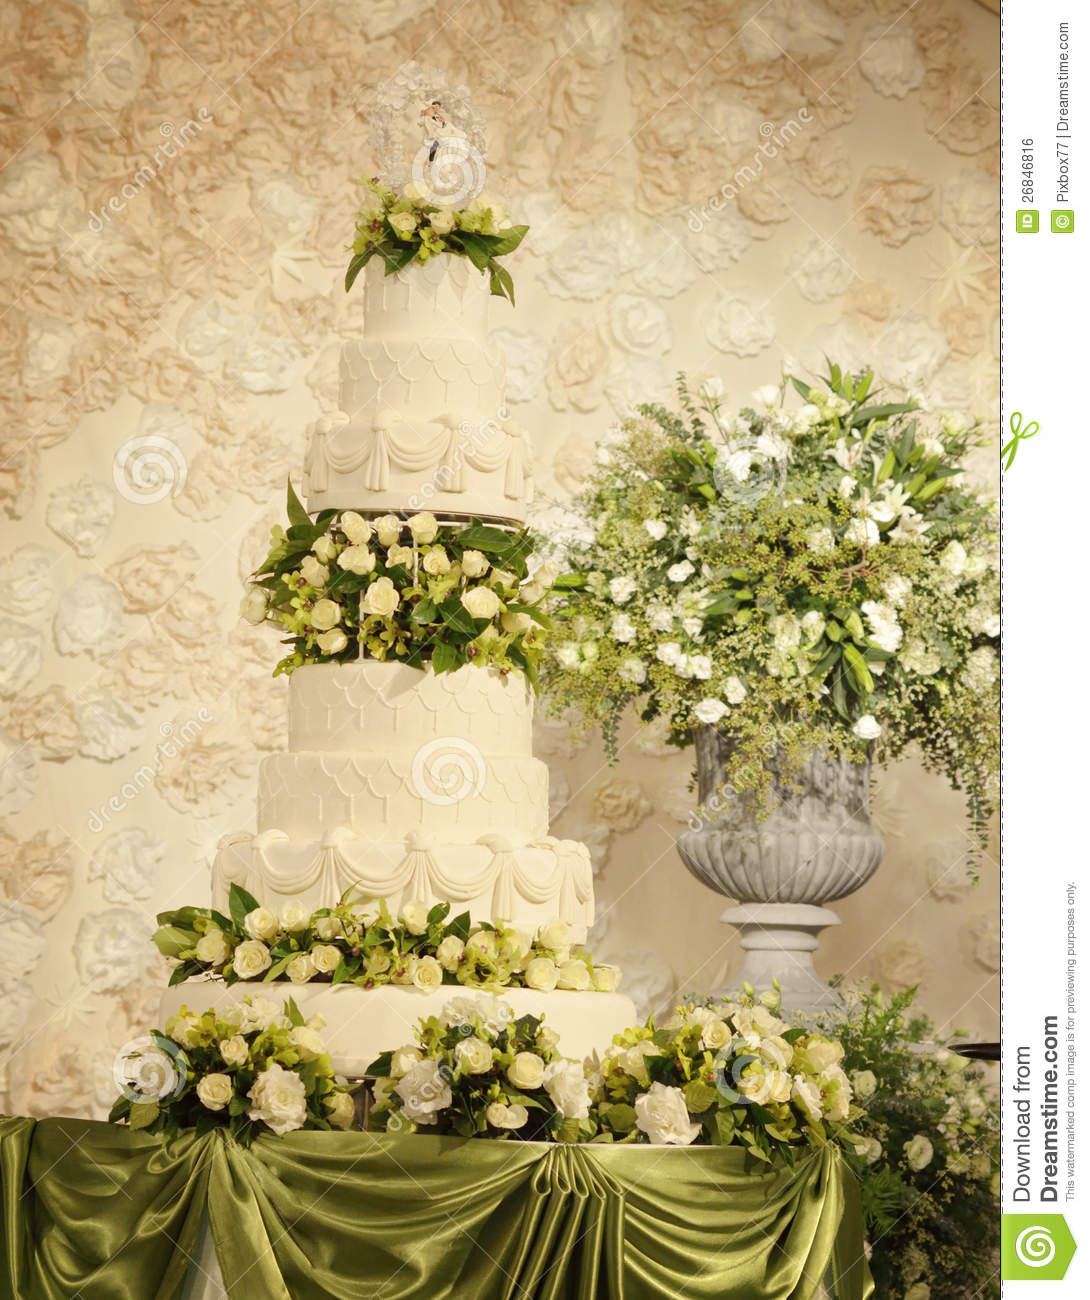 wedding cake with flower decorations stock photo image 26846816. Black Bedroom Furniture Sets. Home Design Ideas